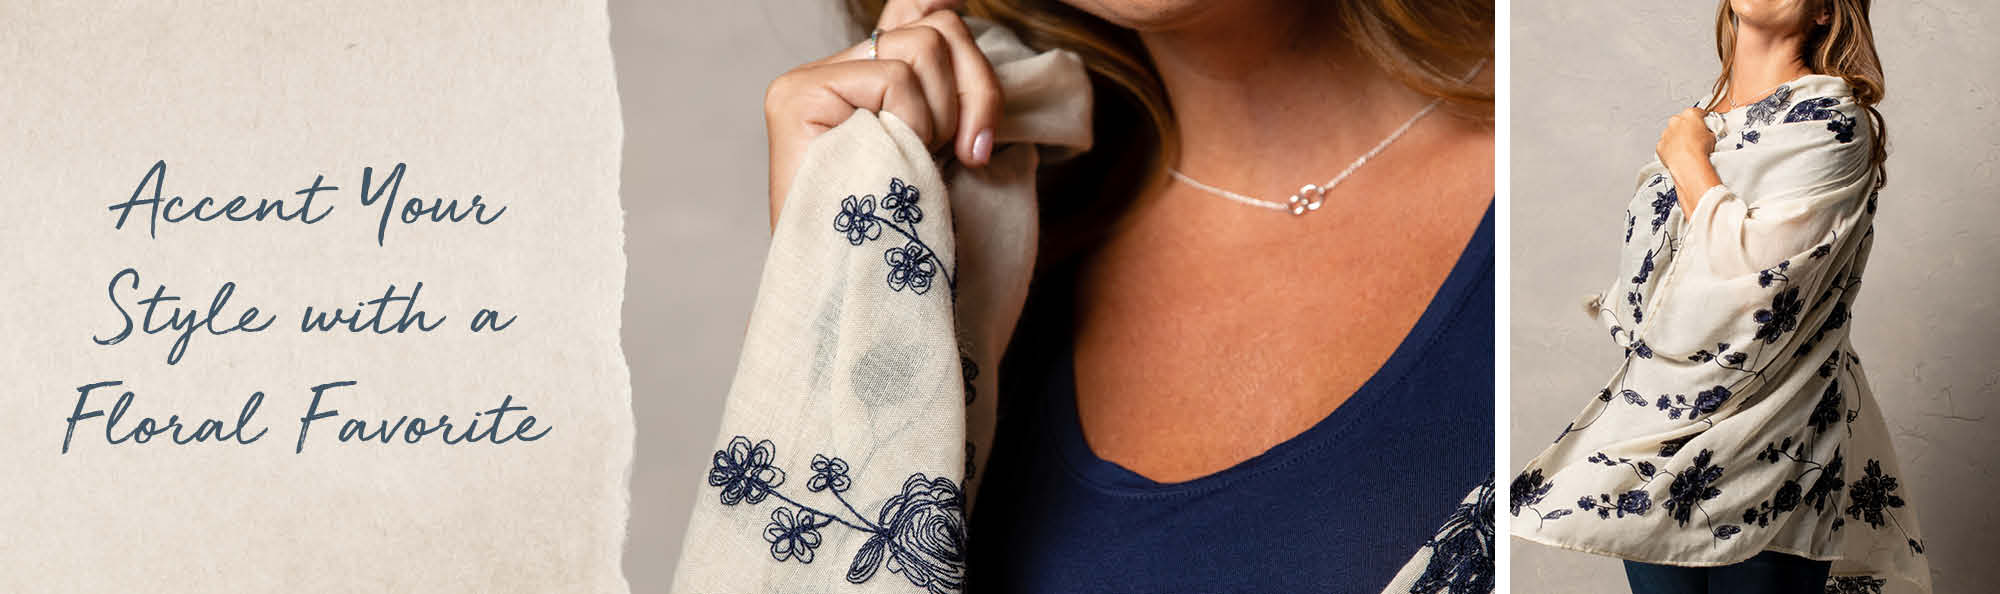 Accent Your Style with a Seasonal Floral Favorite. Woman wearing an white wrap embroidered with a blue floral design.